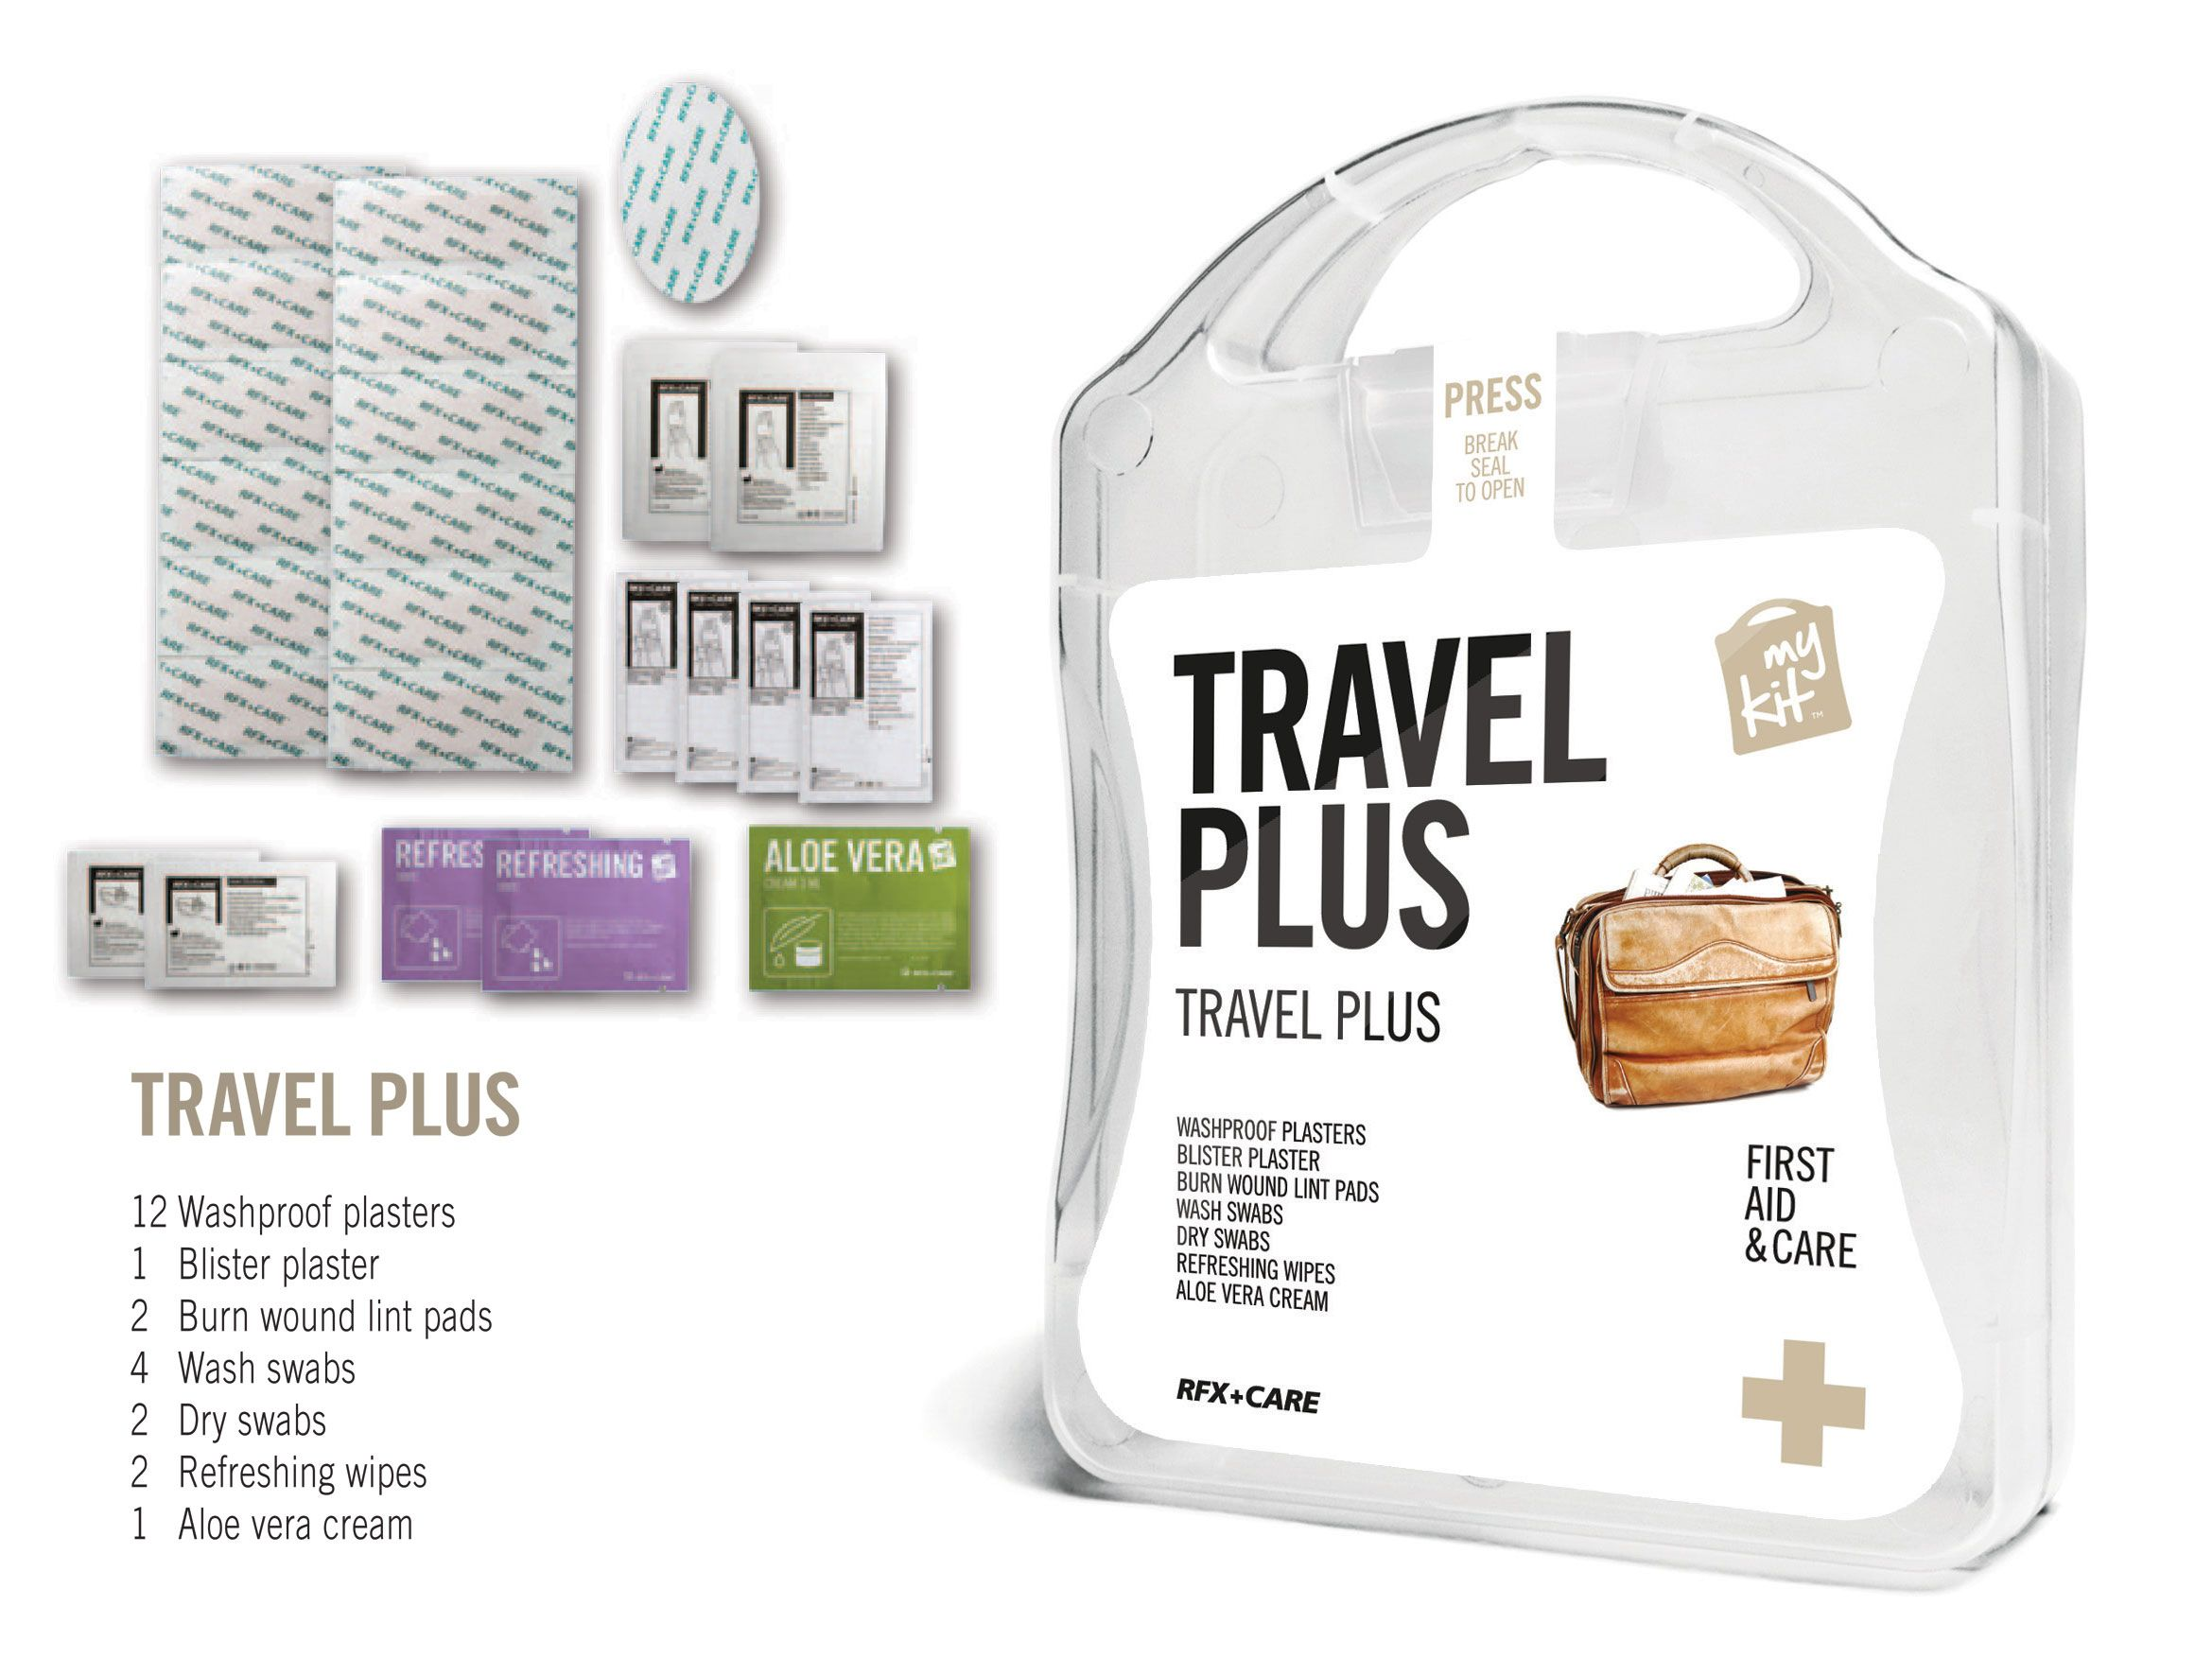 My kit travel plus hotel holiday overnight stay